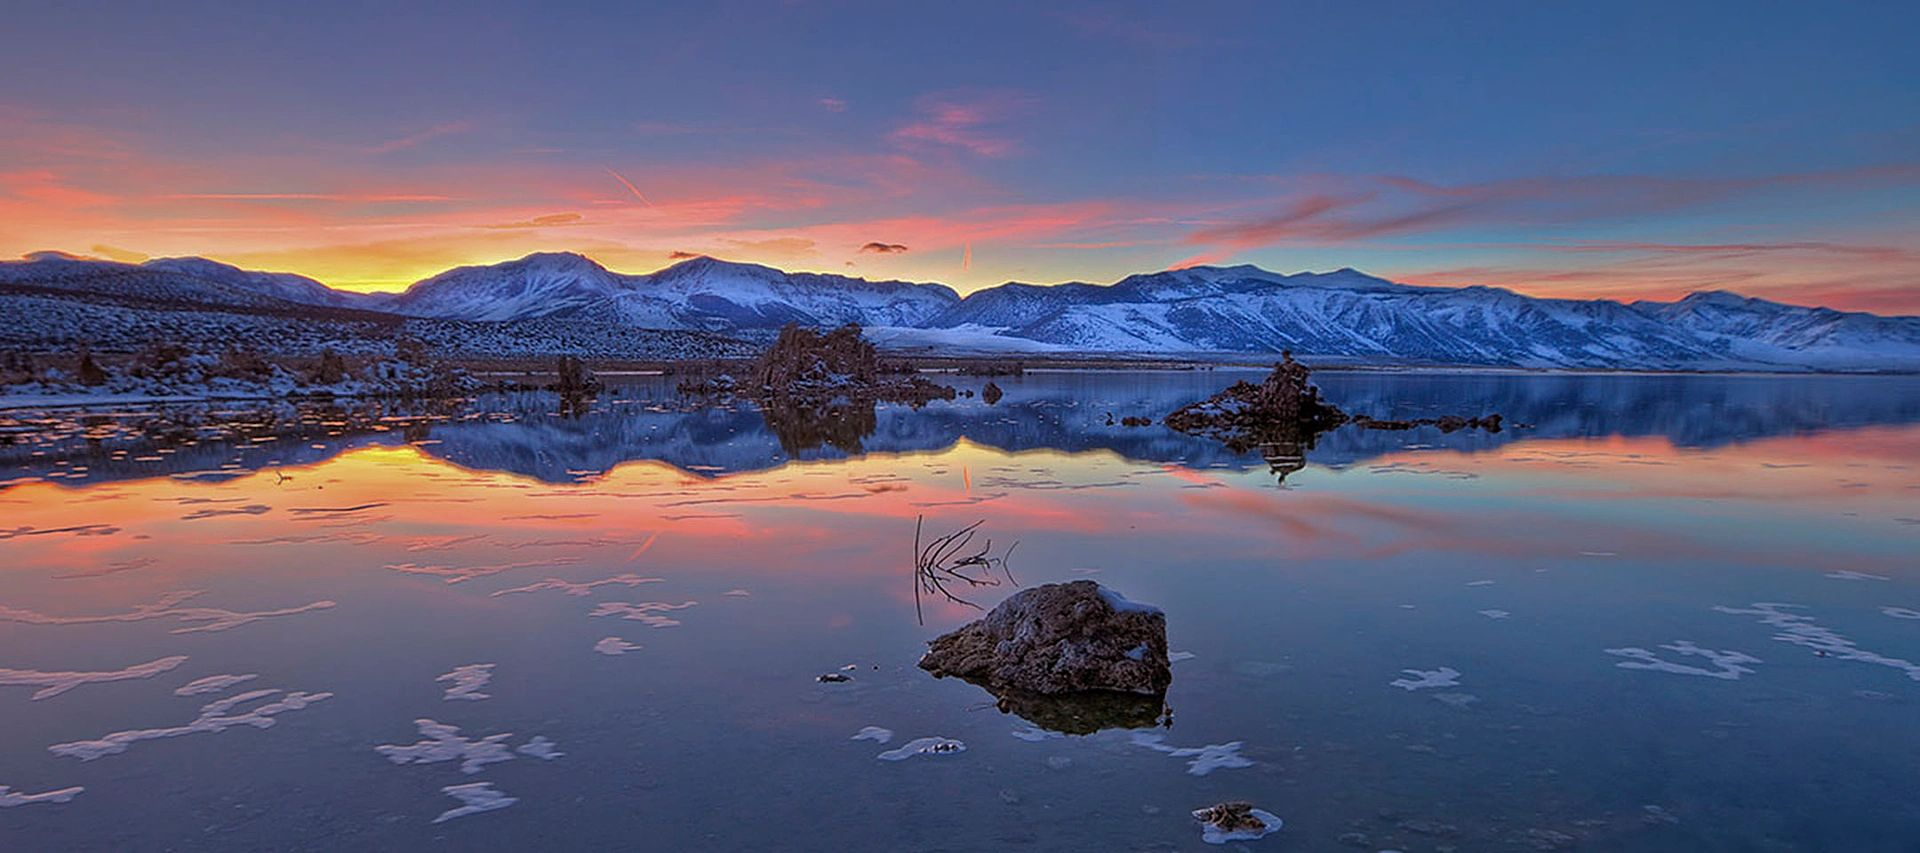 Panorama; Mono Lake Sunset with the Sierra Nevada in the Background